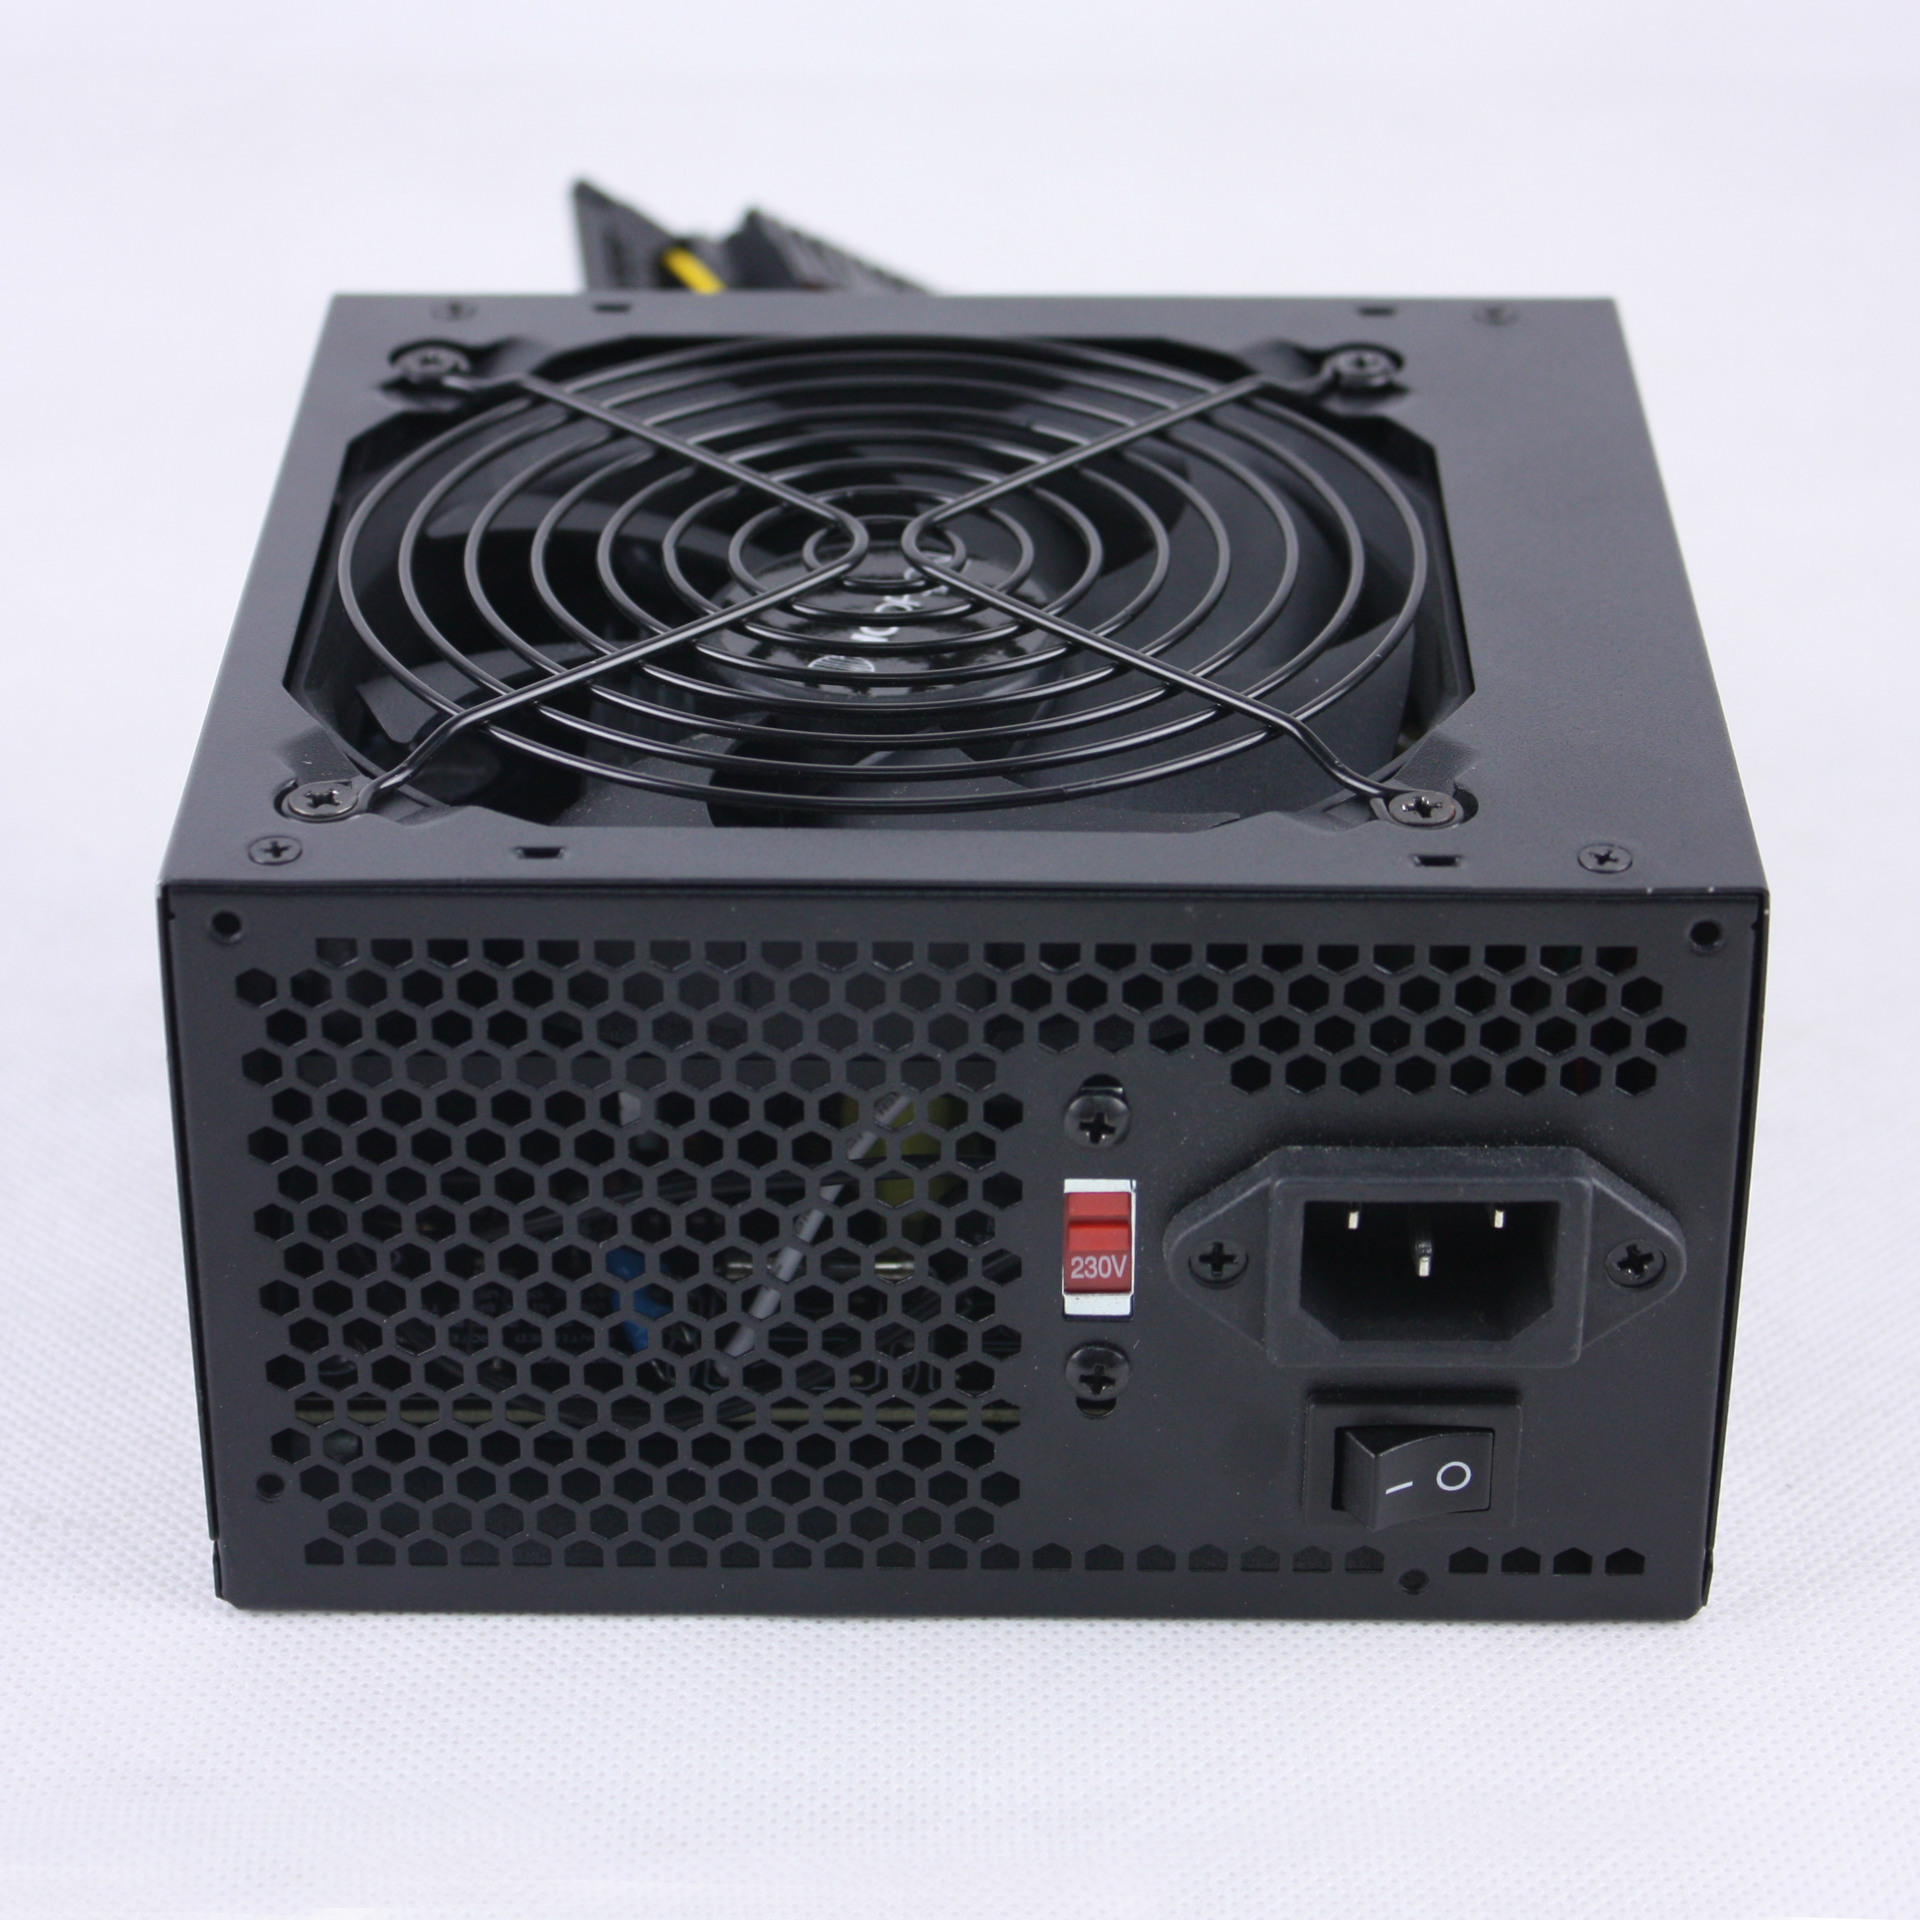 High reputation Atx Power Supply 450w -